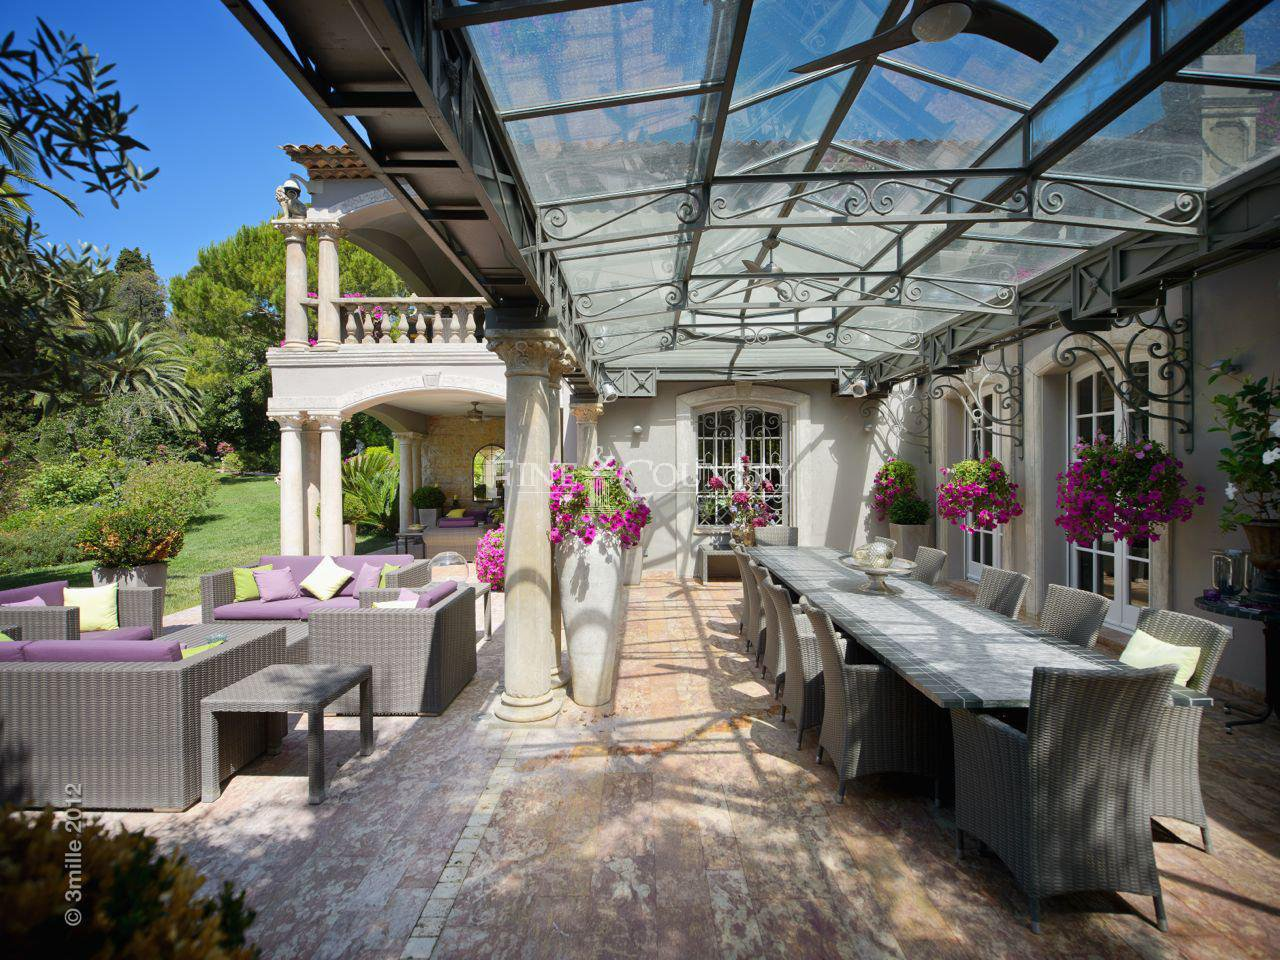 Luxury Villa for sale in La Calfornie, Cannes